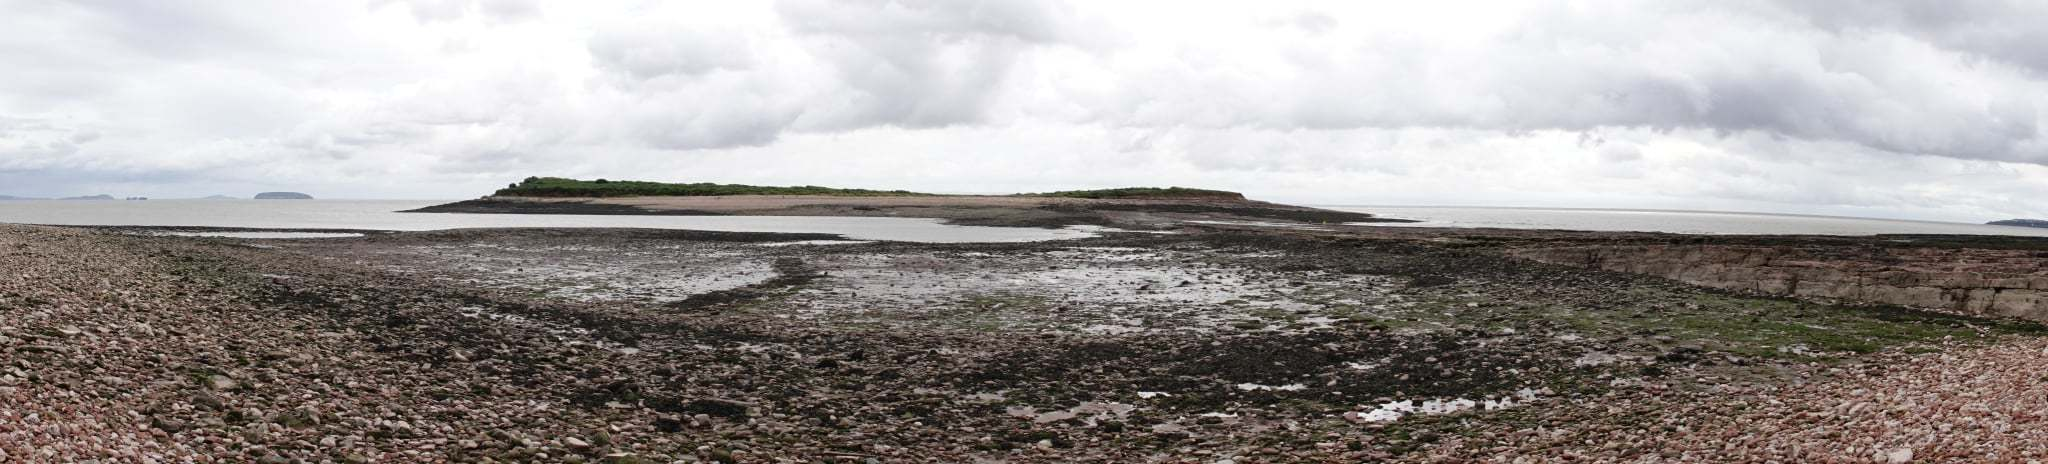 n amazing picture of Sully Island at low tide by John Wilson